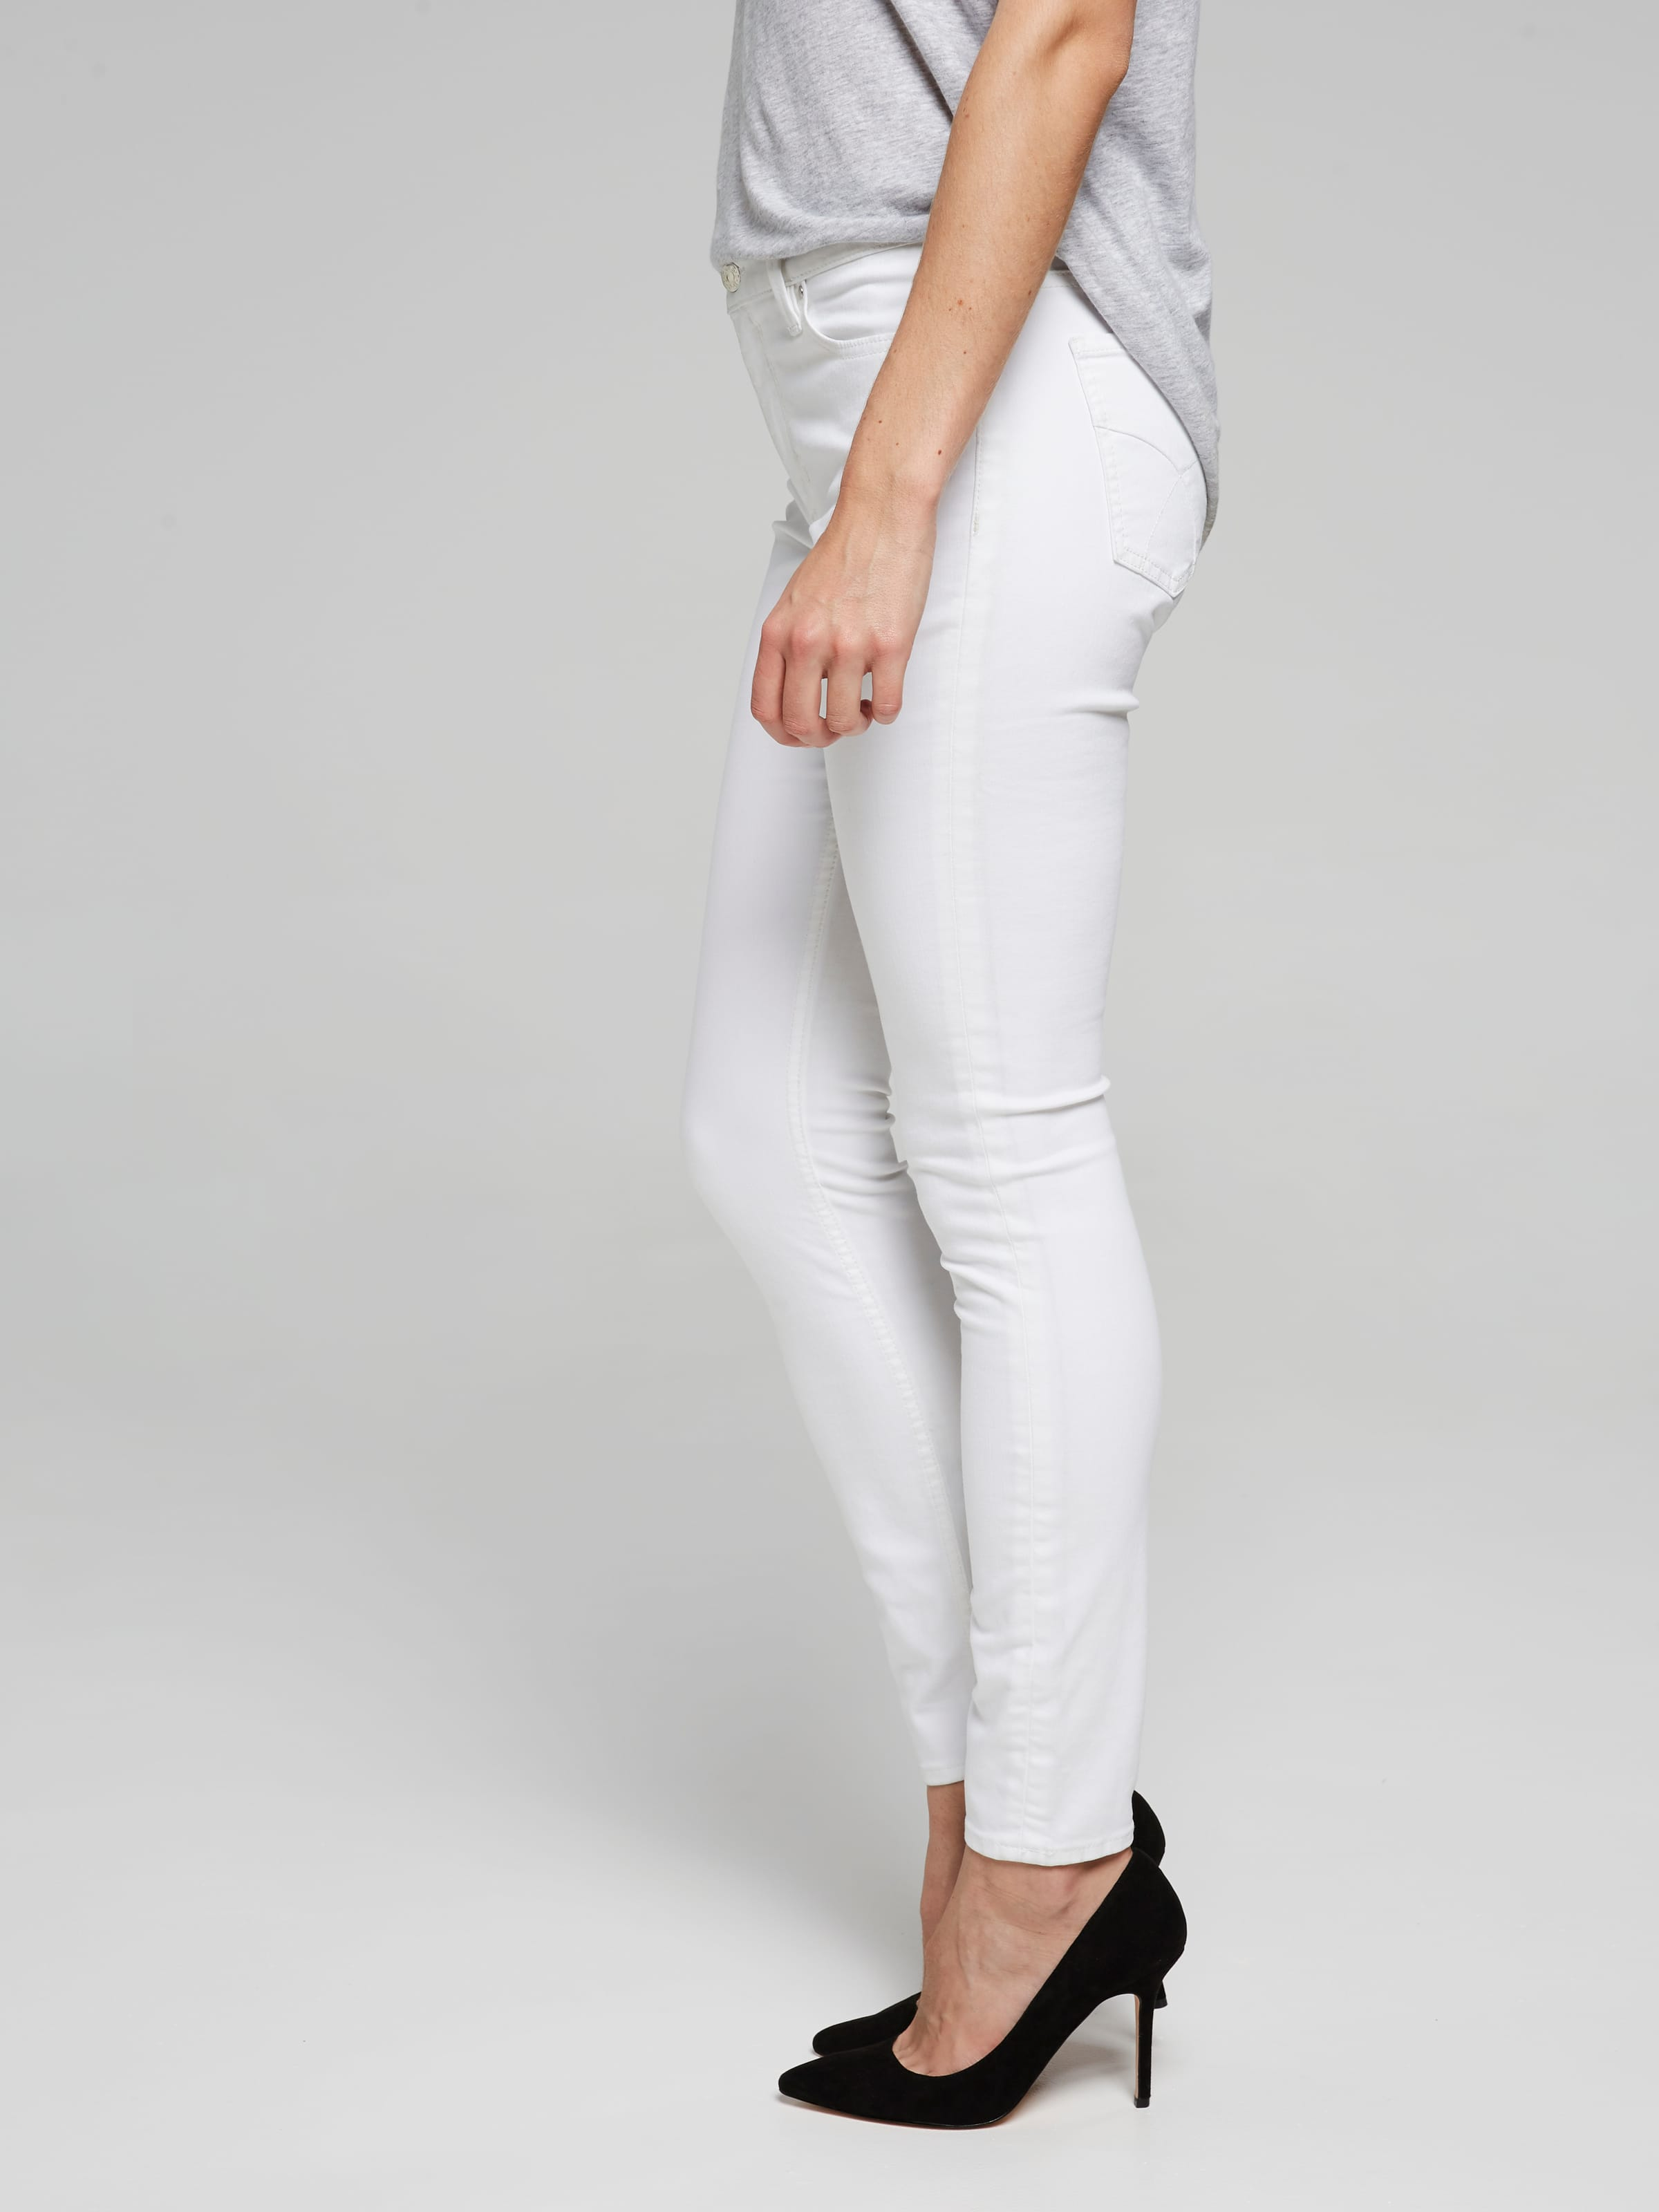 74b06018 ... Image for Riders By Lee Mid Vegas Jean In True White from Just Jeans